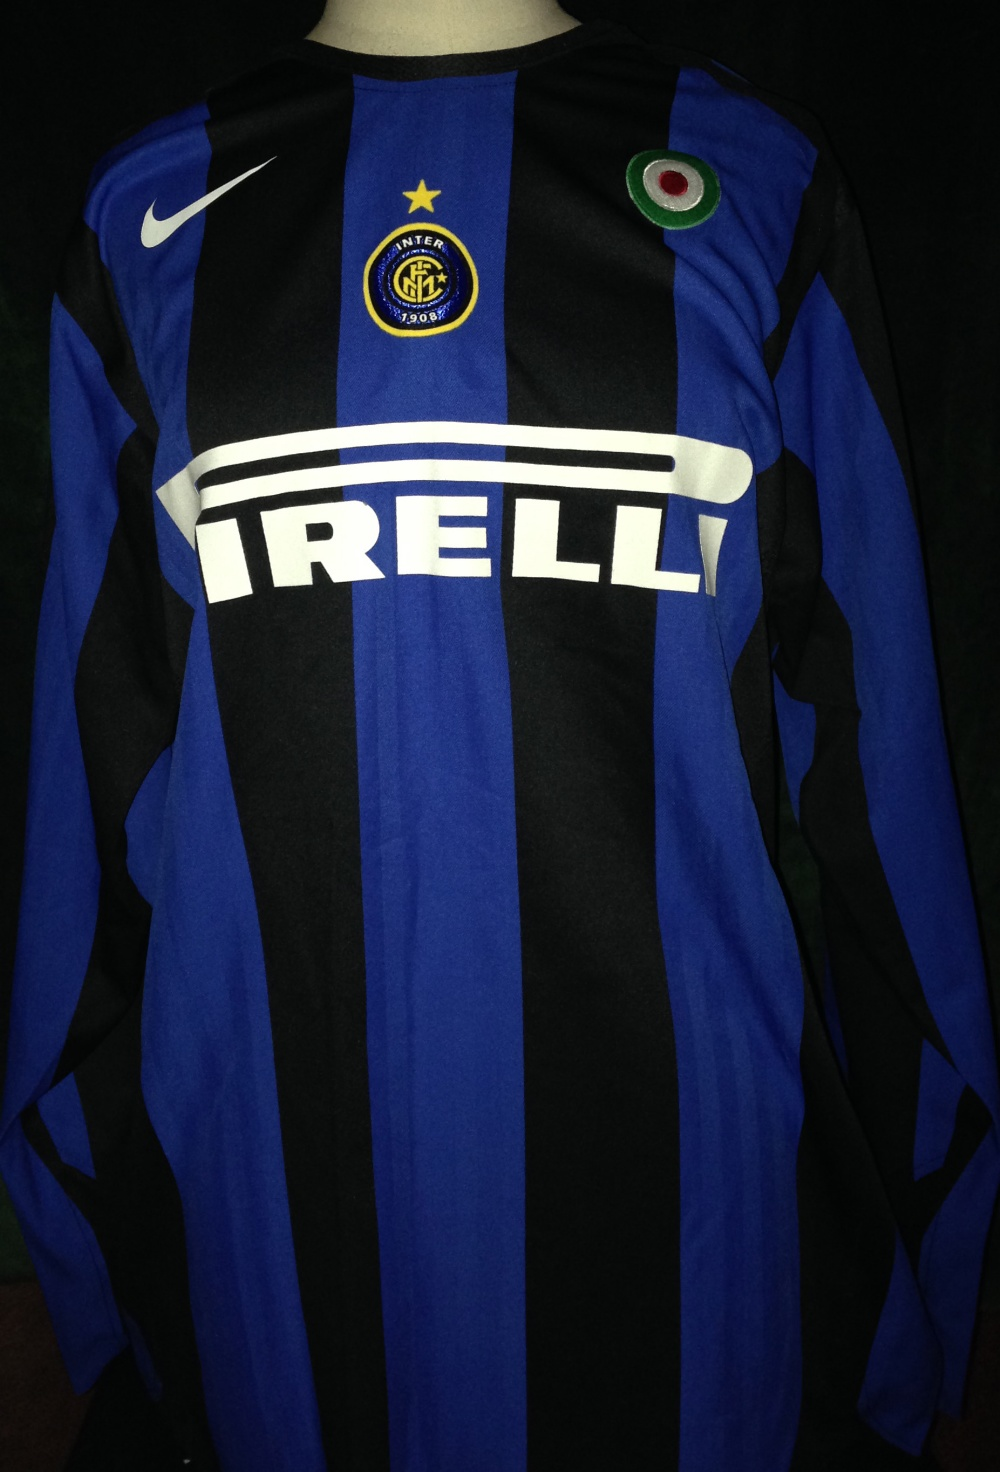 brand new f1231 f230a Match Worn Football Shirt: Inter Milan home shirt 2005/6 ...